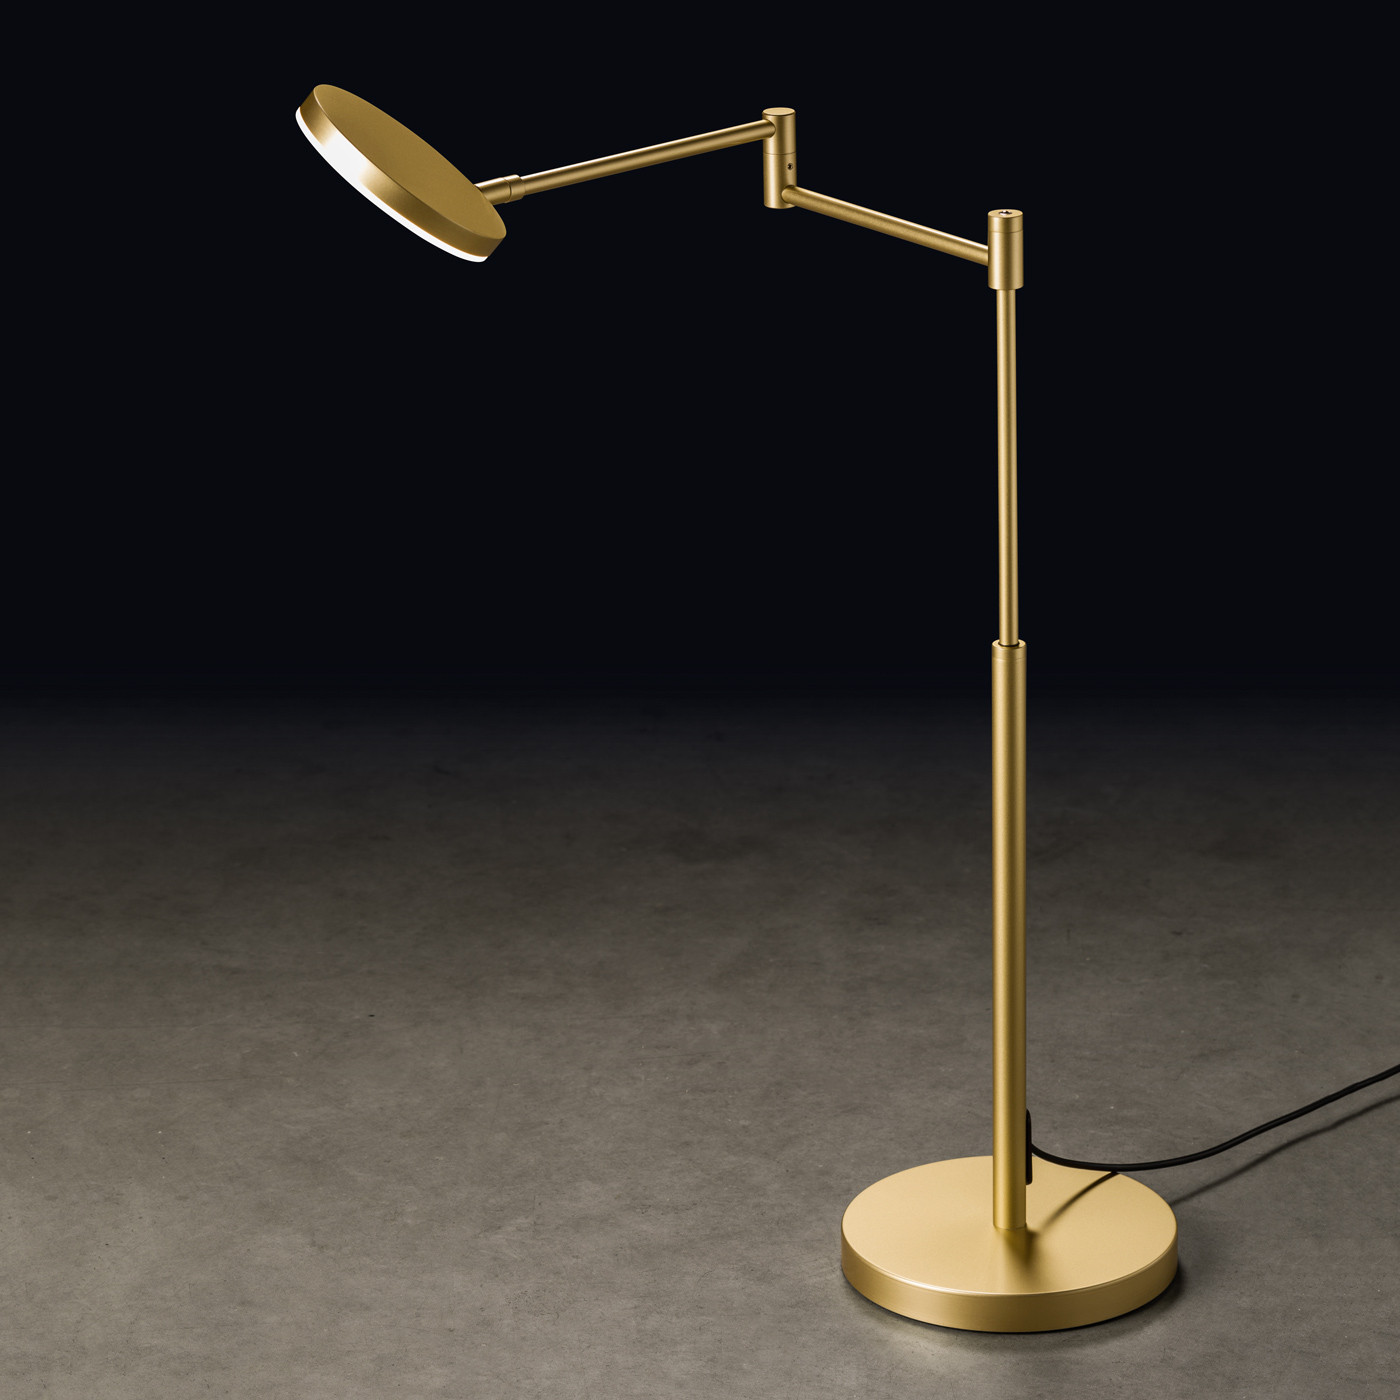 Holtkötter Plano 9657 Table Lamp At